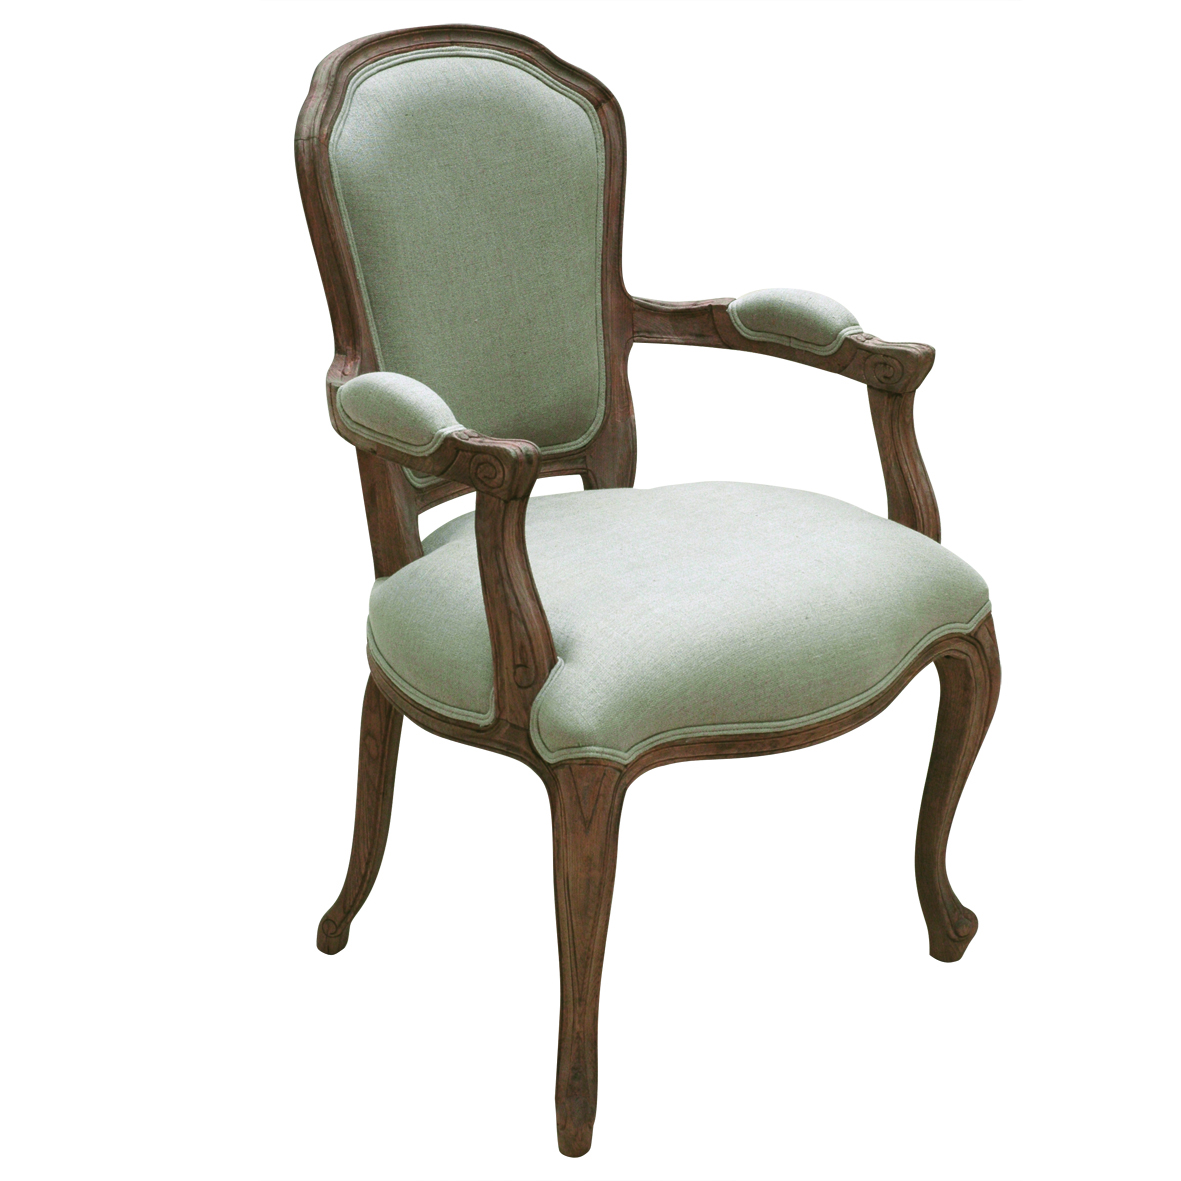 Chaise vandecasteele for Chaise 1er prix